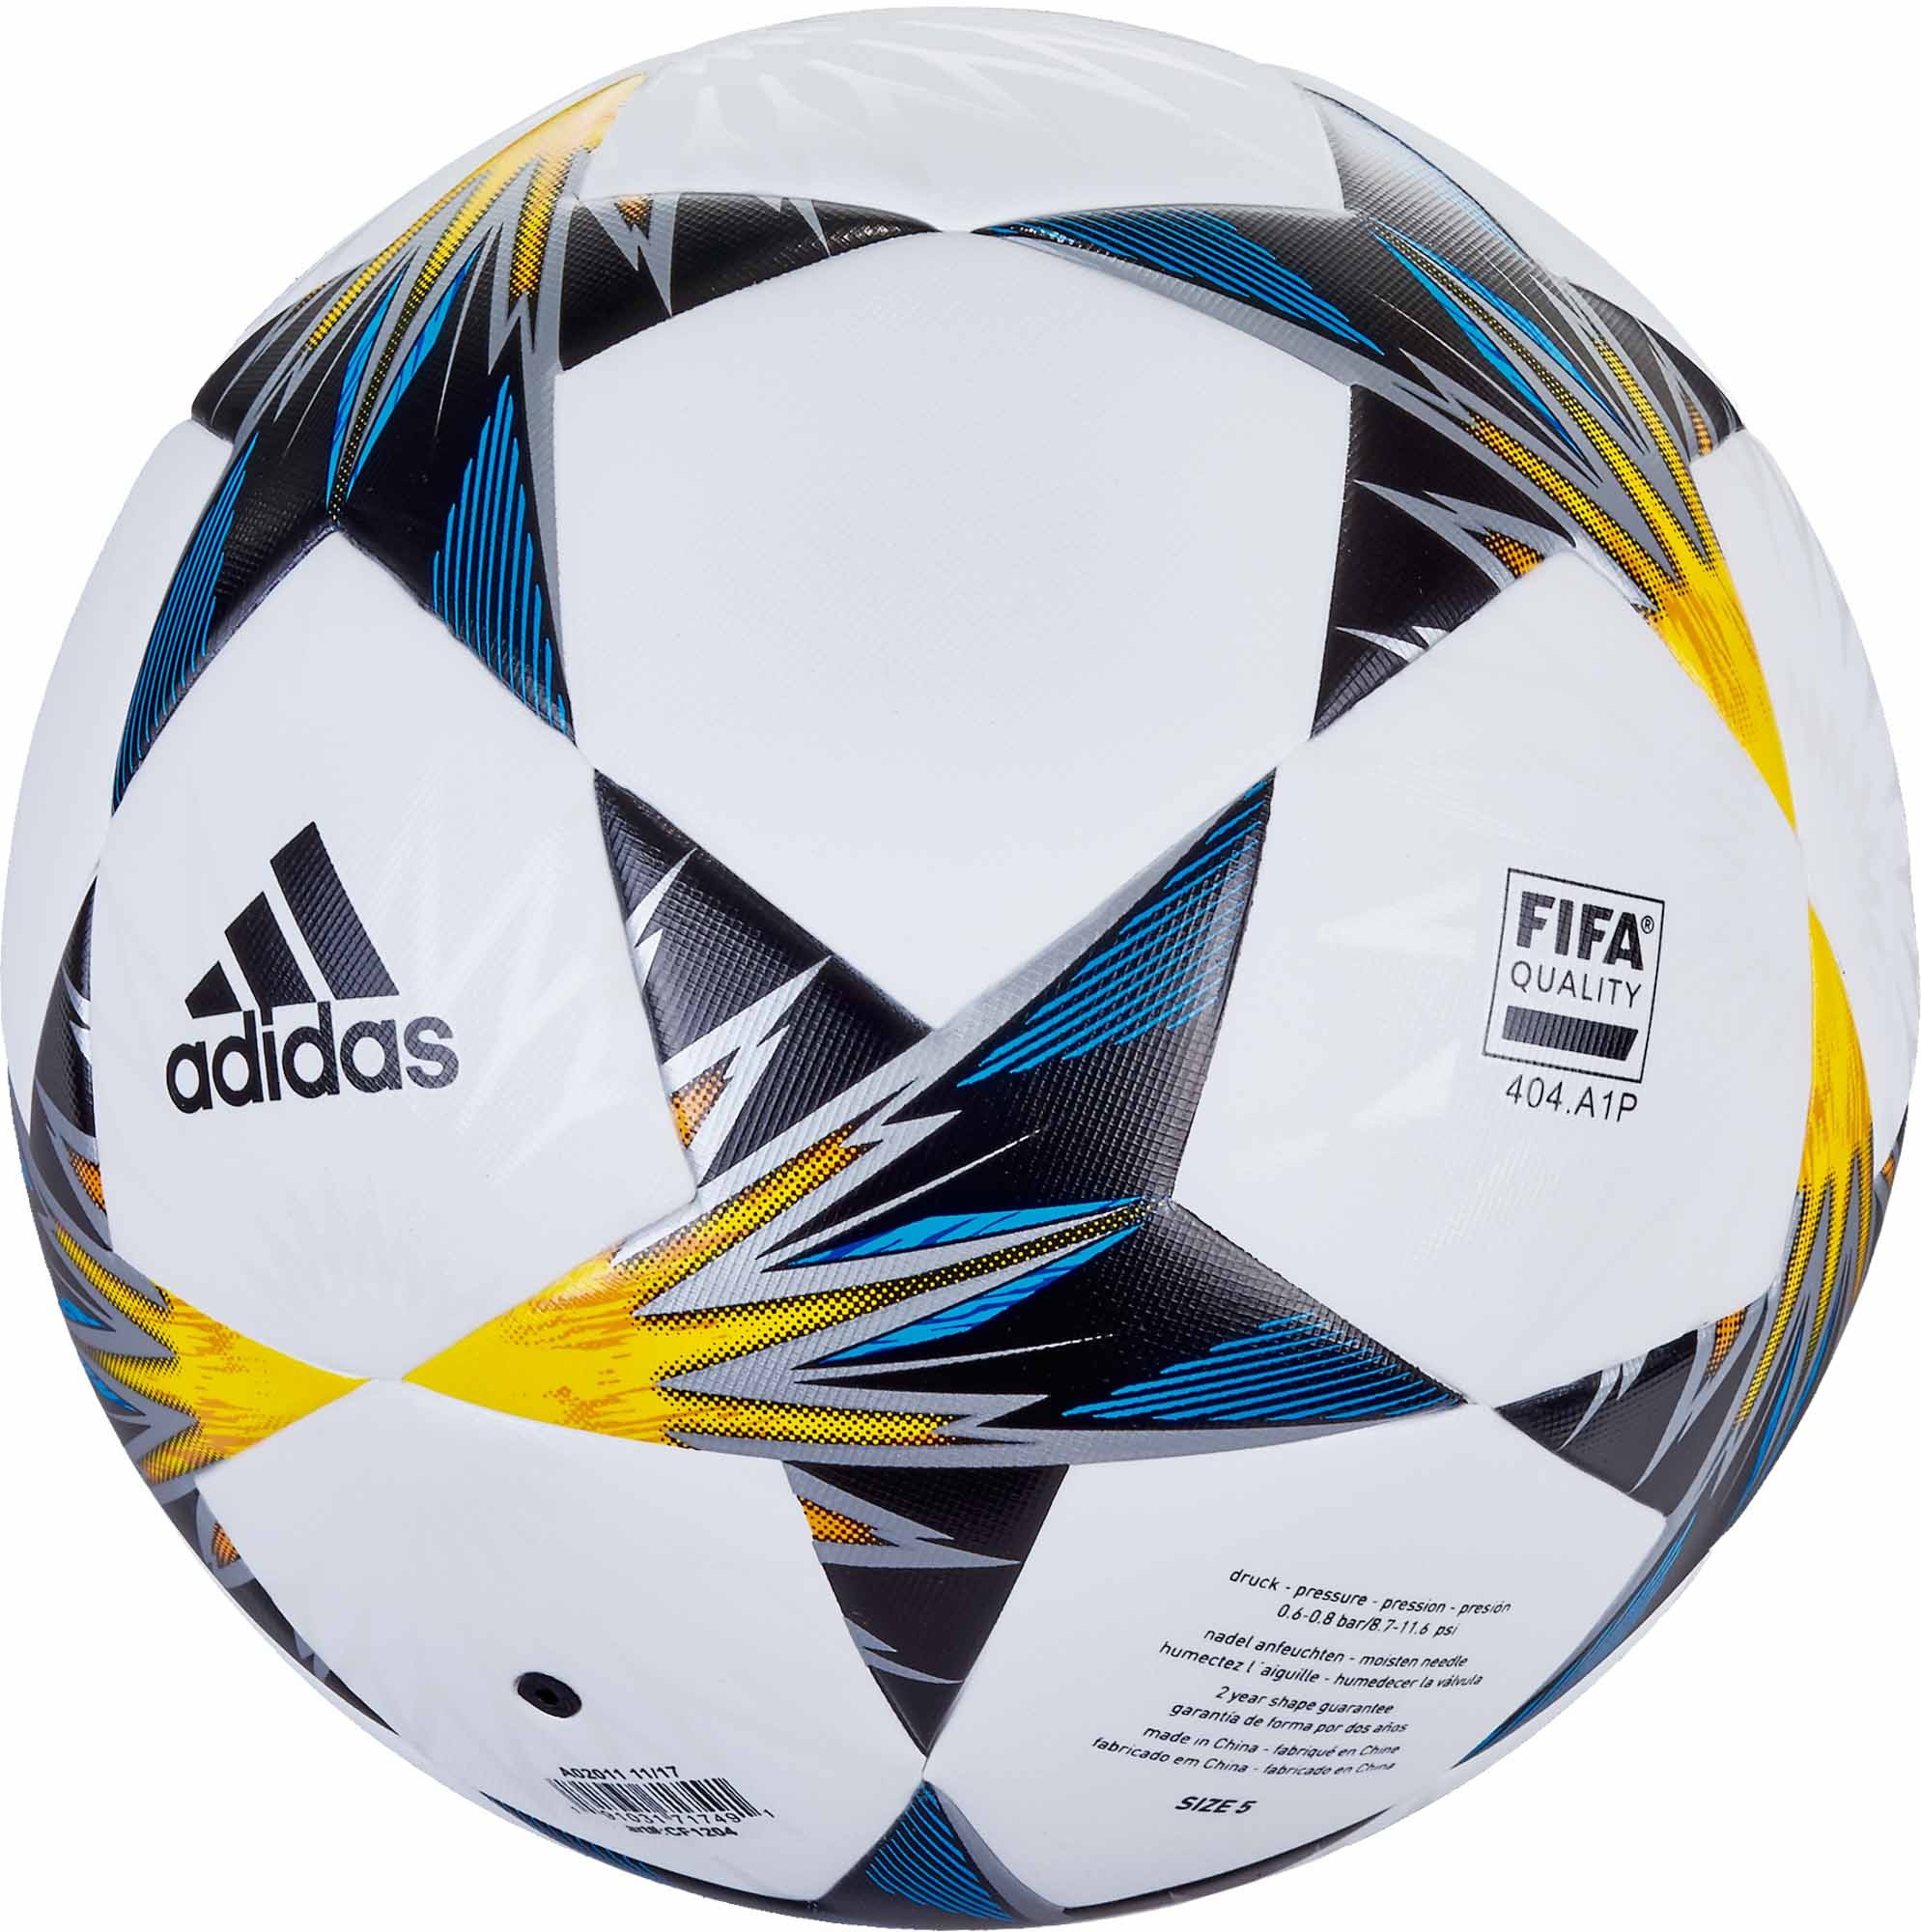 adidas Finale Kiev Top Trainer Soccer Ball – White Solar Yellow 8339ffbe3c